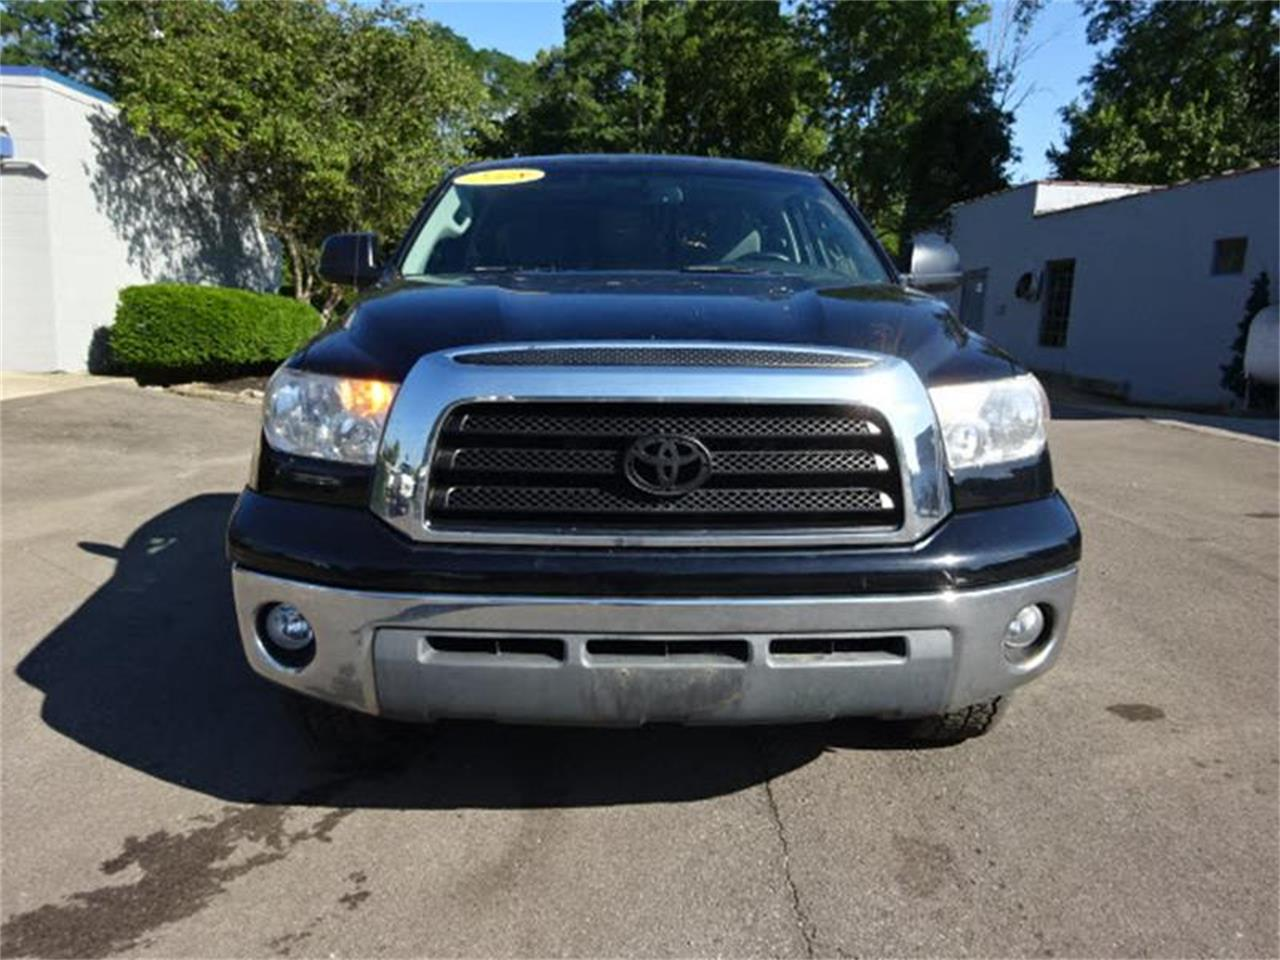 Large Picture of 2008 Toyota Tundra located in Loveland Ohio - $11,000.00 Offered by Cincinnati Auto Wholesale - MBKP